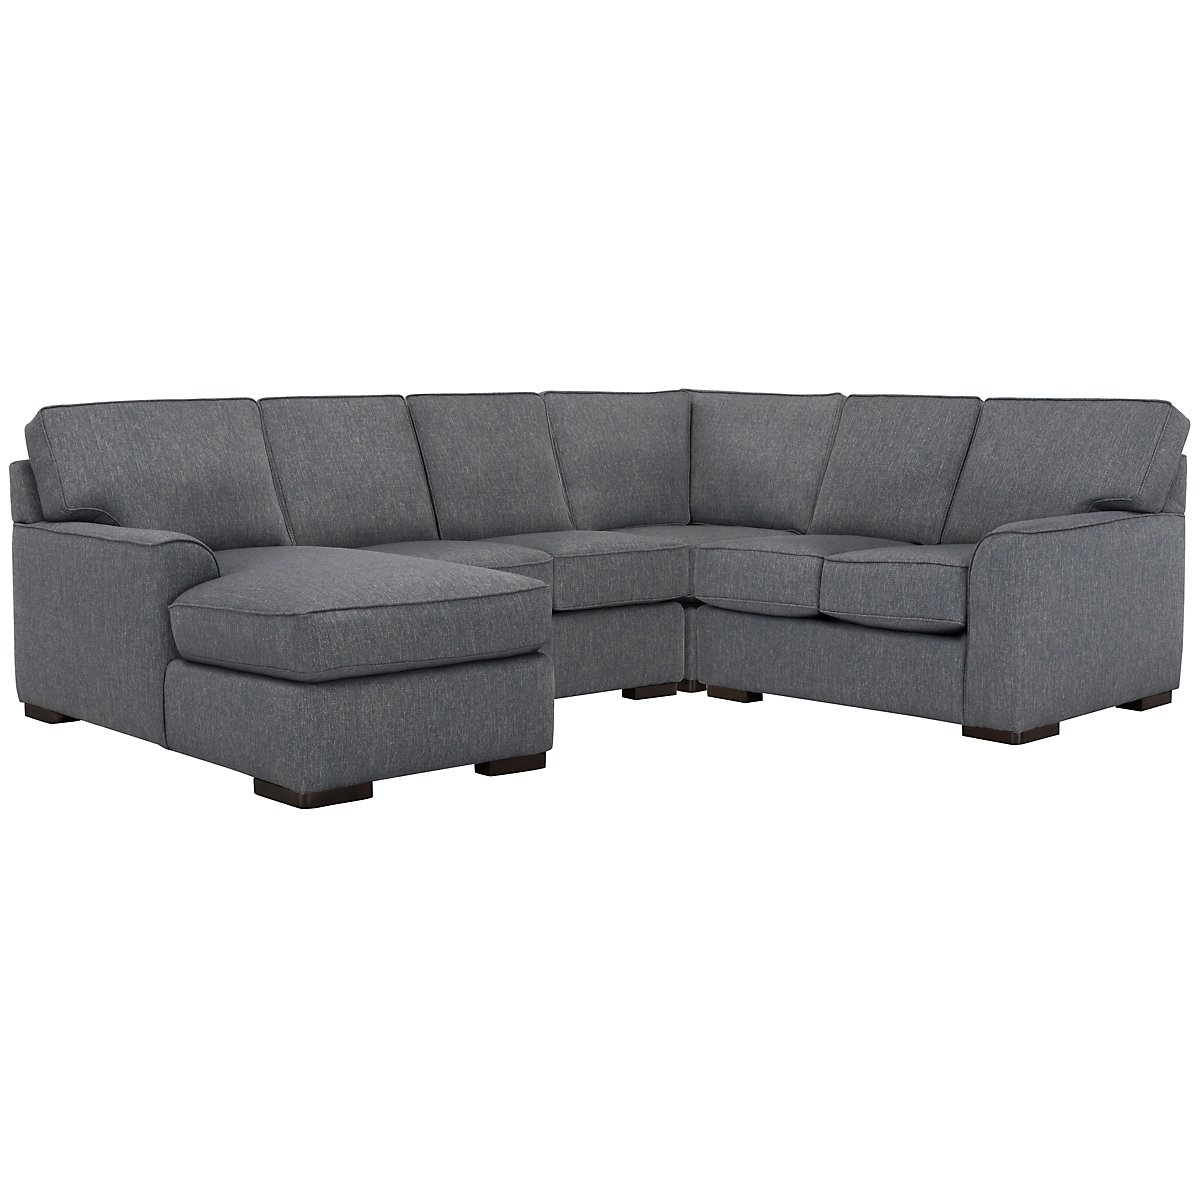 Austin Blue Fabric Medium Left Chaise Sectional